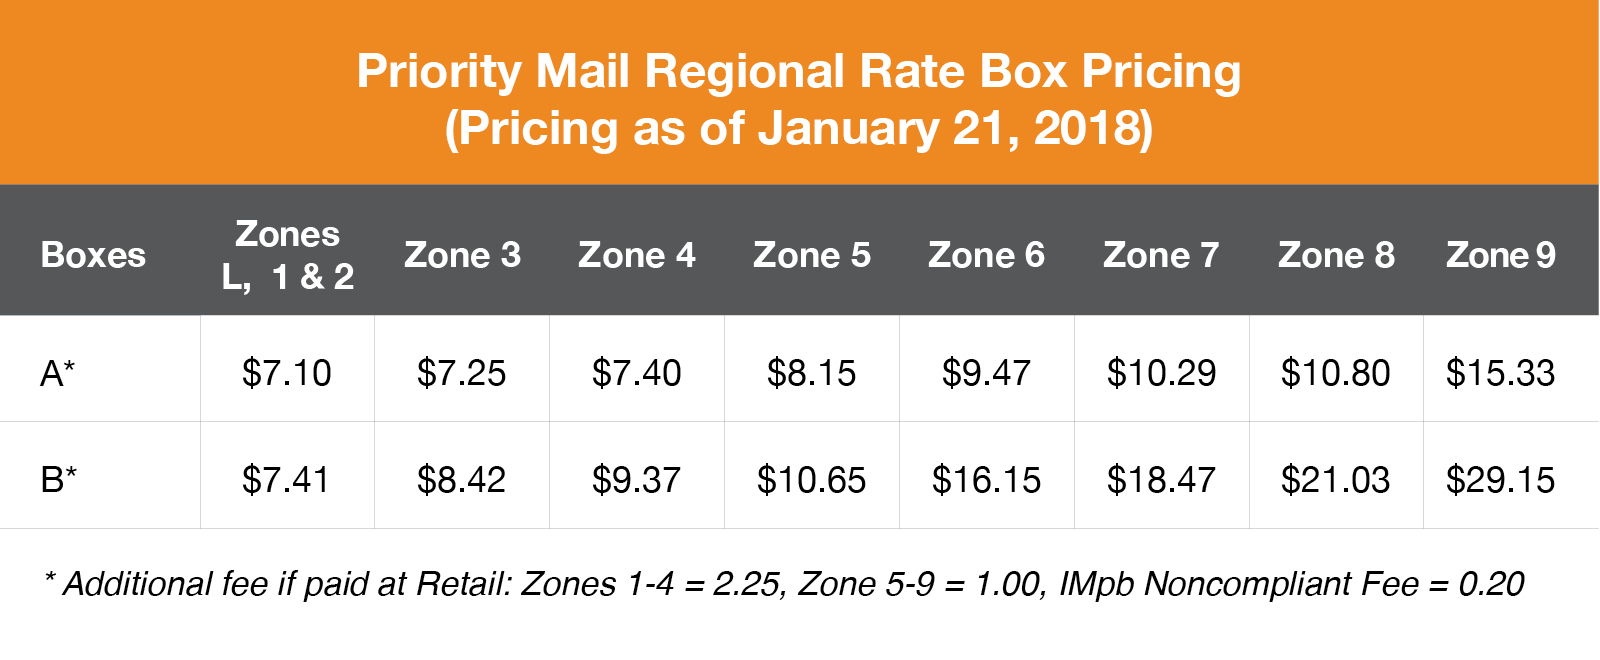 Priority Mail Regional Rate 2018 Pricing